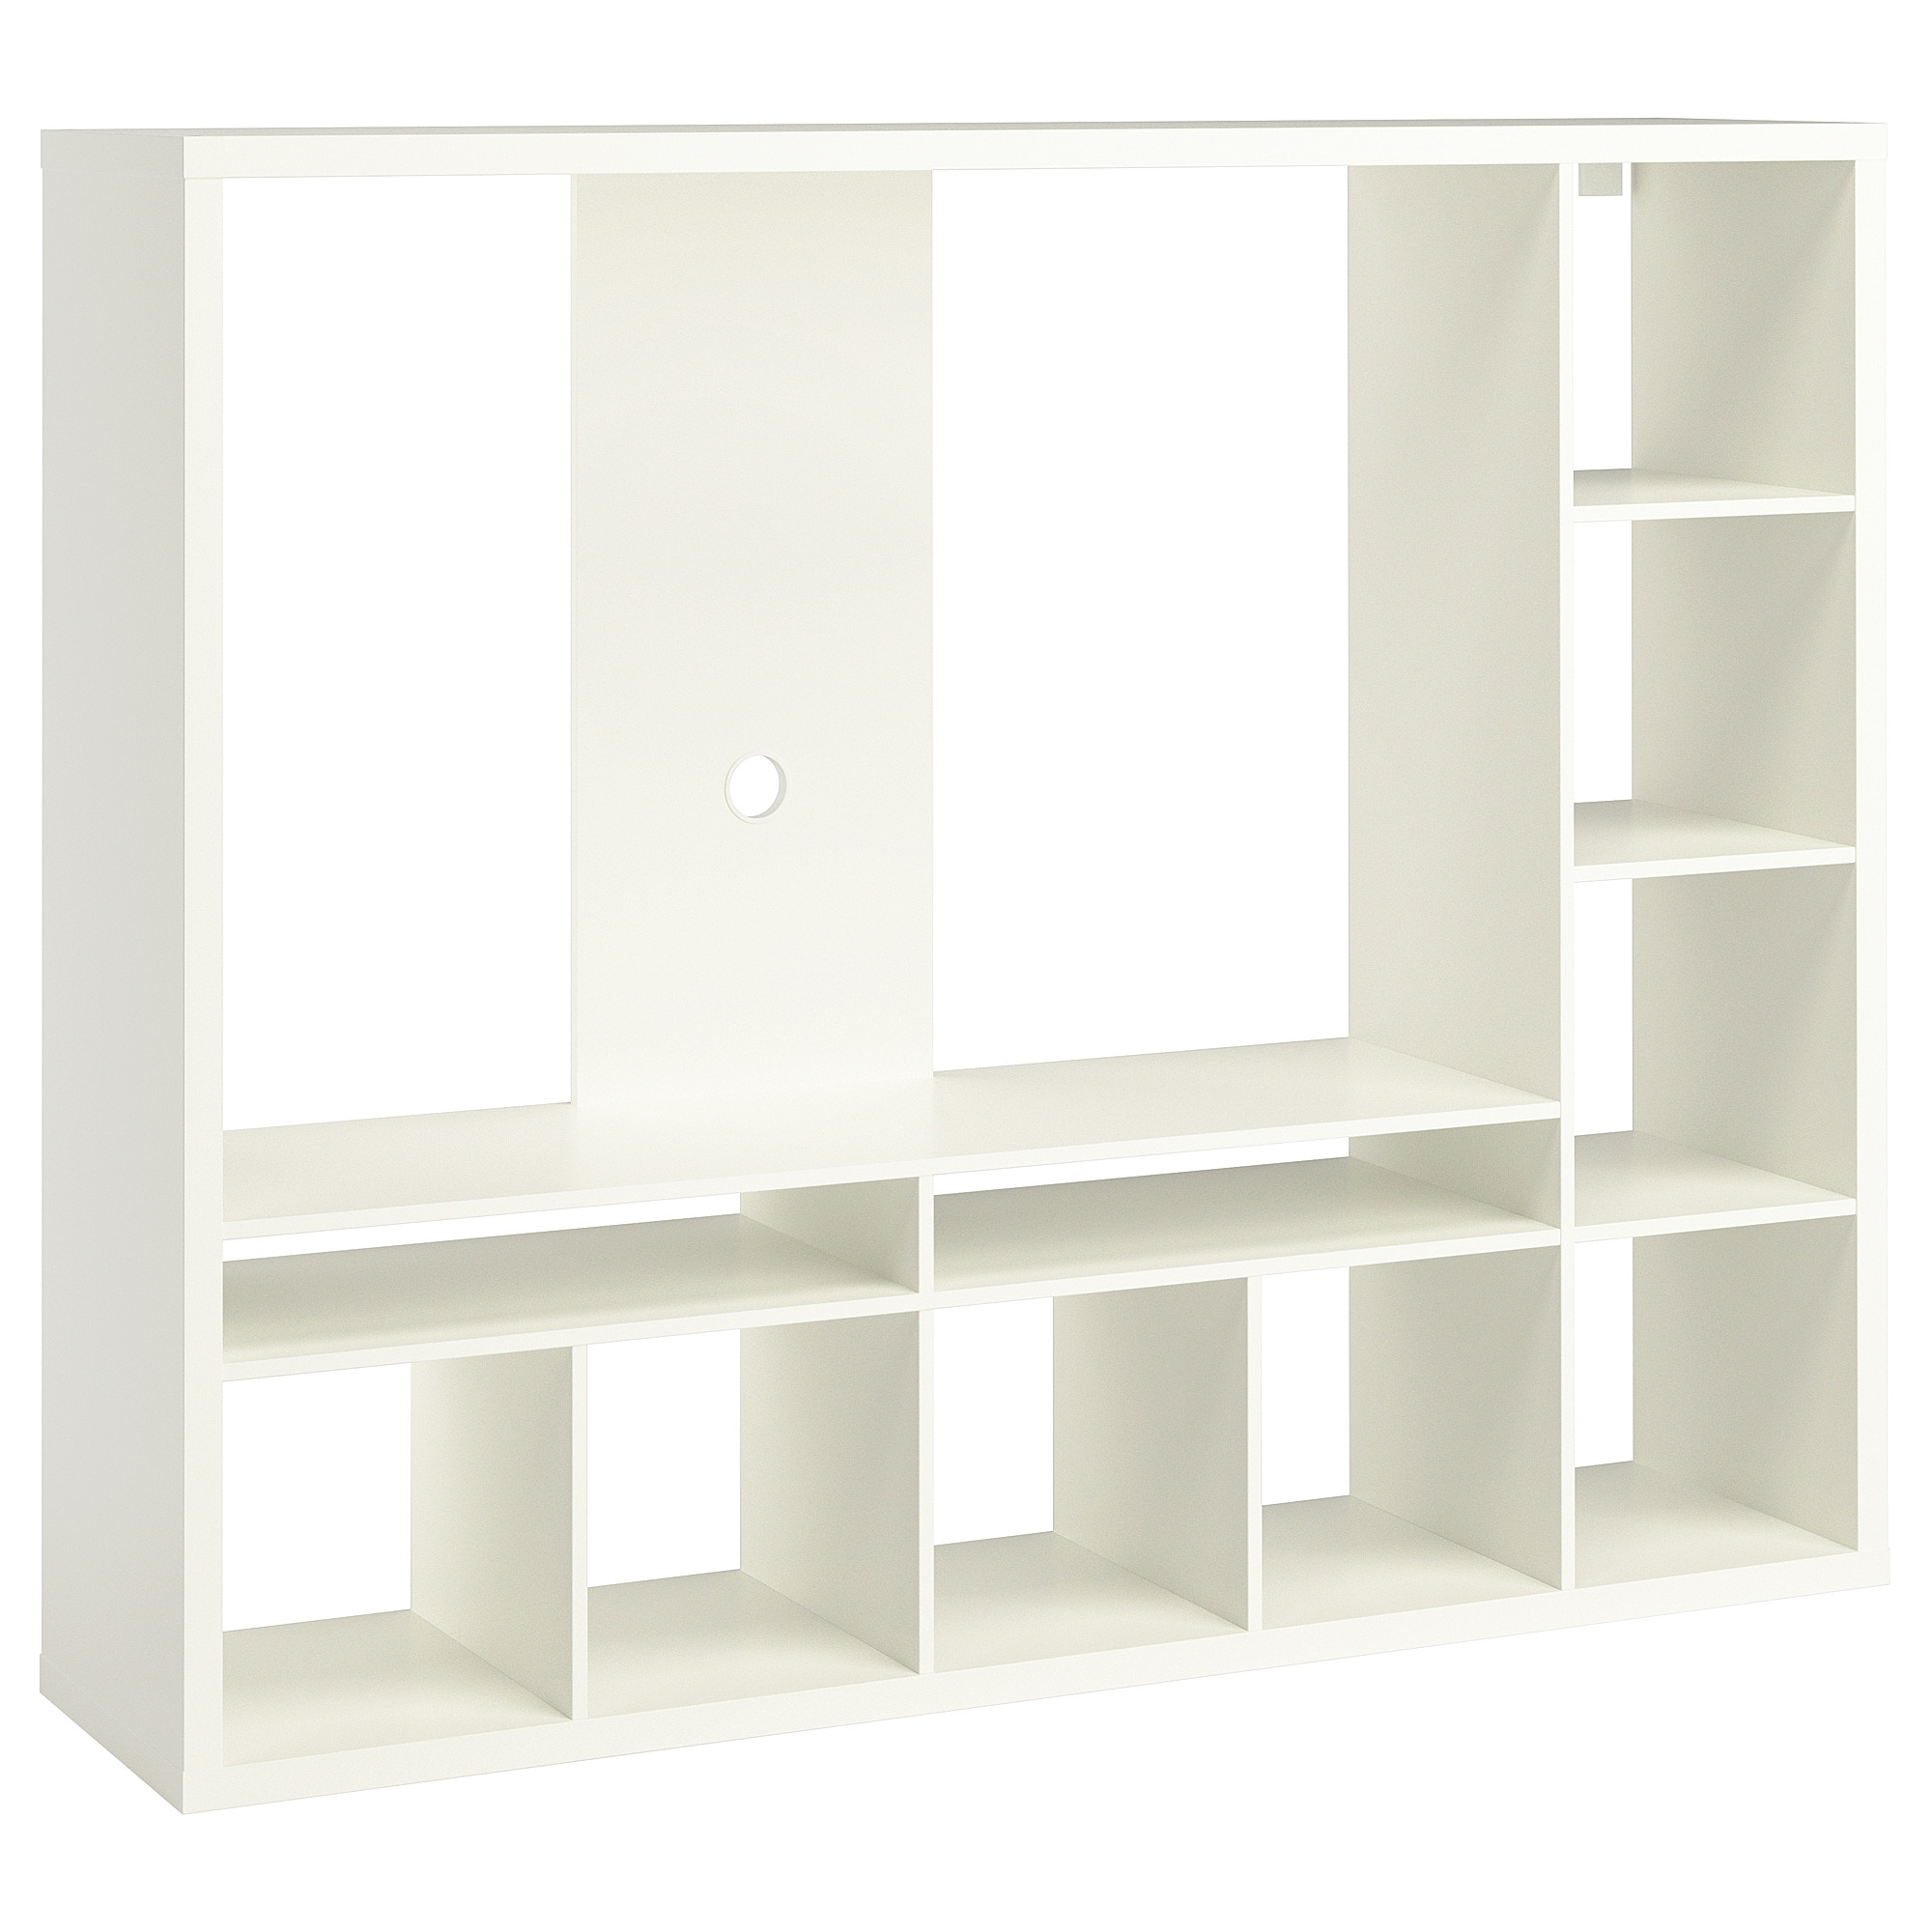 Ikea White Gloss Tv Units Throughout Well Known Lappland Tv Storage Unit White 183 X 39 X 147 Cm – Ikea (Gallery 16 of 20)